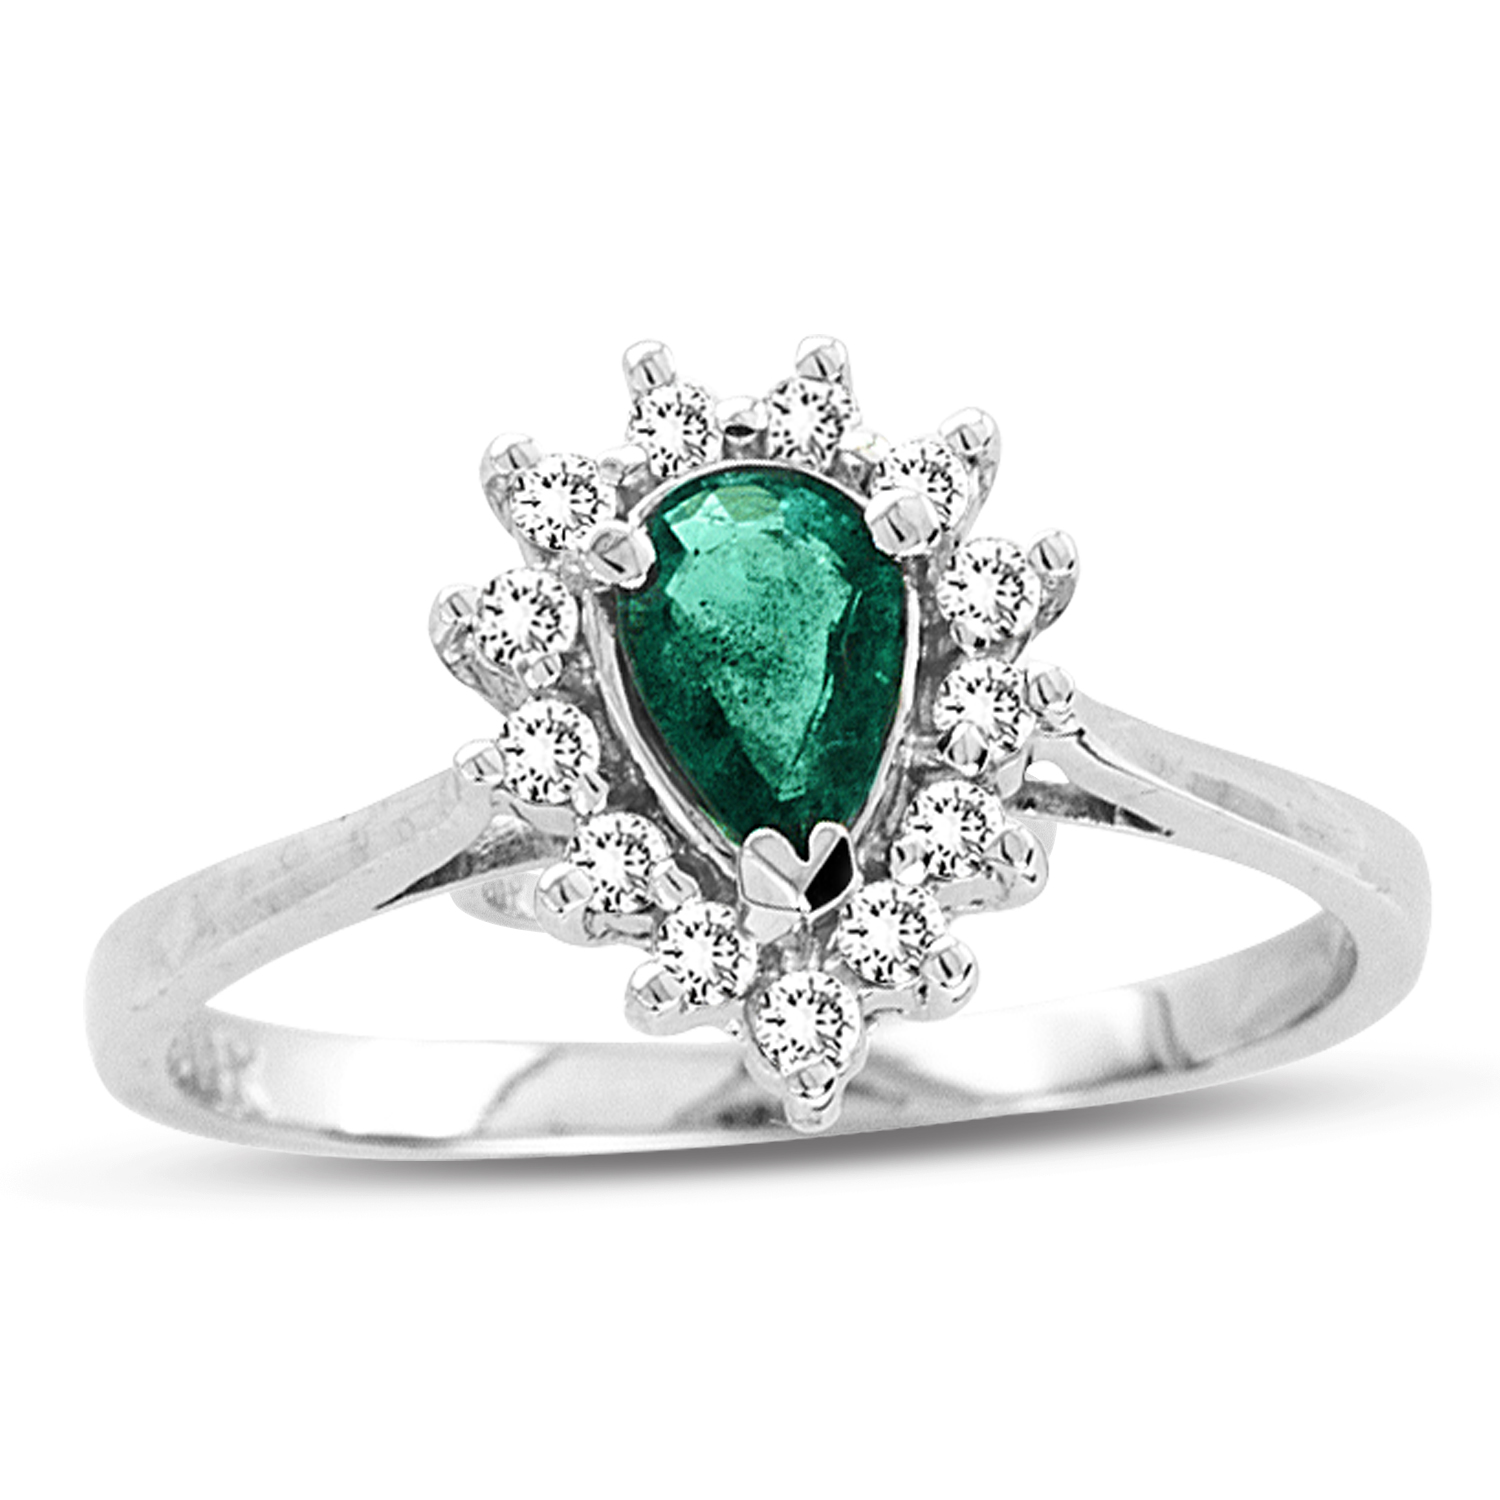 View 0.53ct tw Pear Shaped Emerald and Diamond Ring in 14k Gold